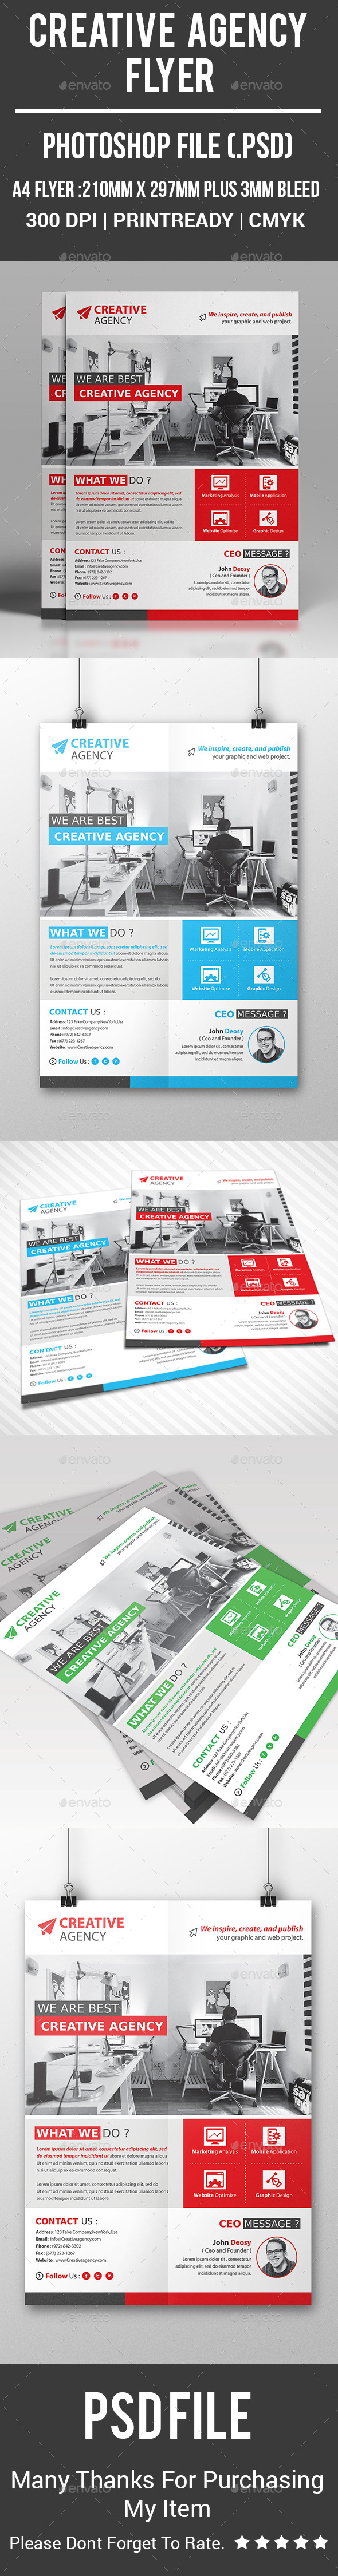 Creative Agency Flyer - Corporate Flyers